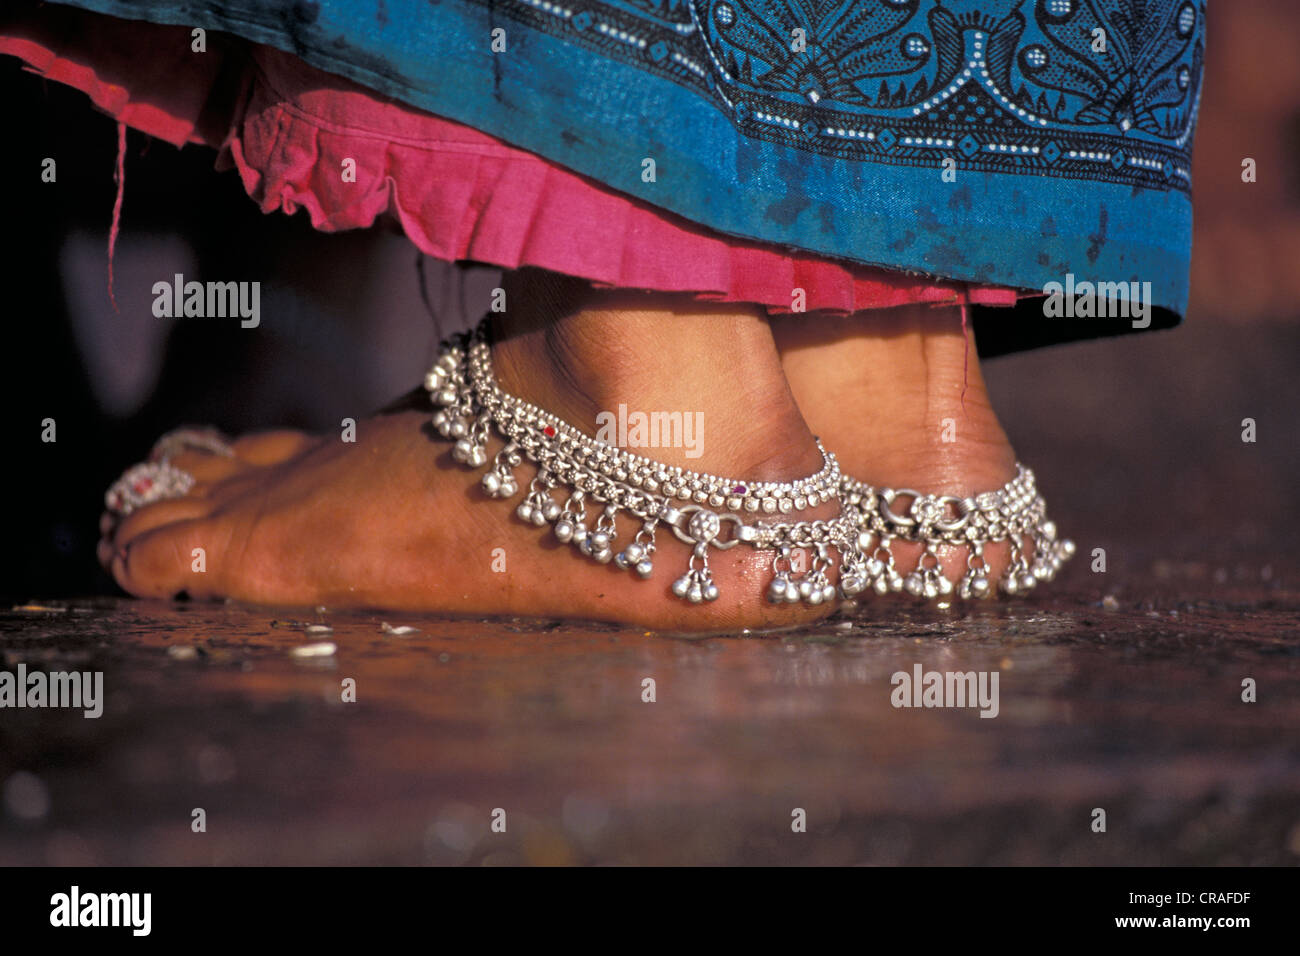 Women With Anklets Stock Photos & Women With Anklets Stock Images ...